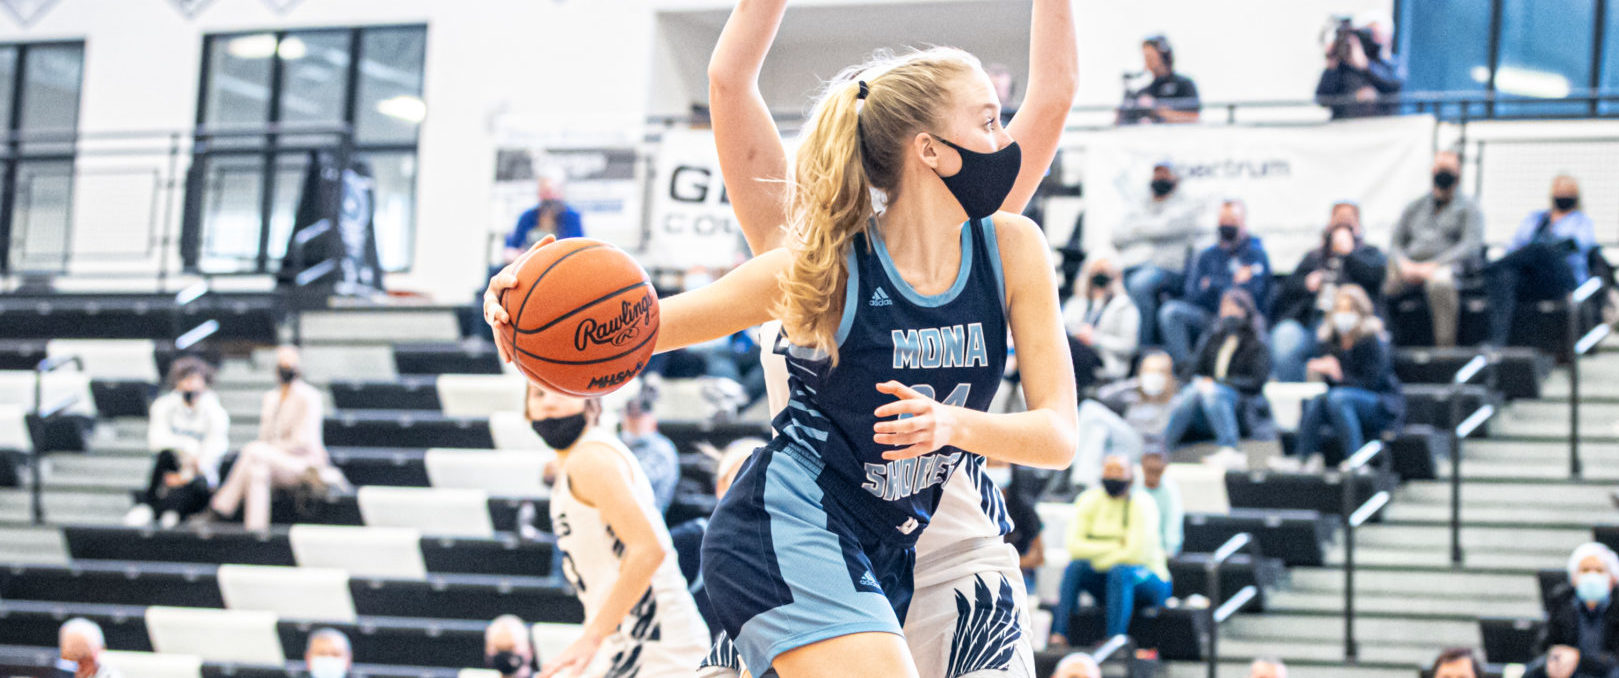 Mona Shores girls basketball team ends season with a 62-43 loss to powerful Hudsonville in Division 2 regionals